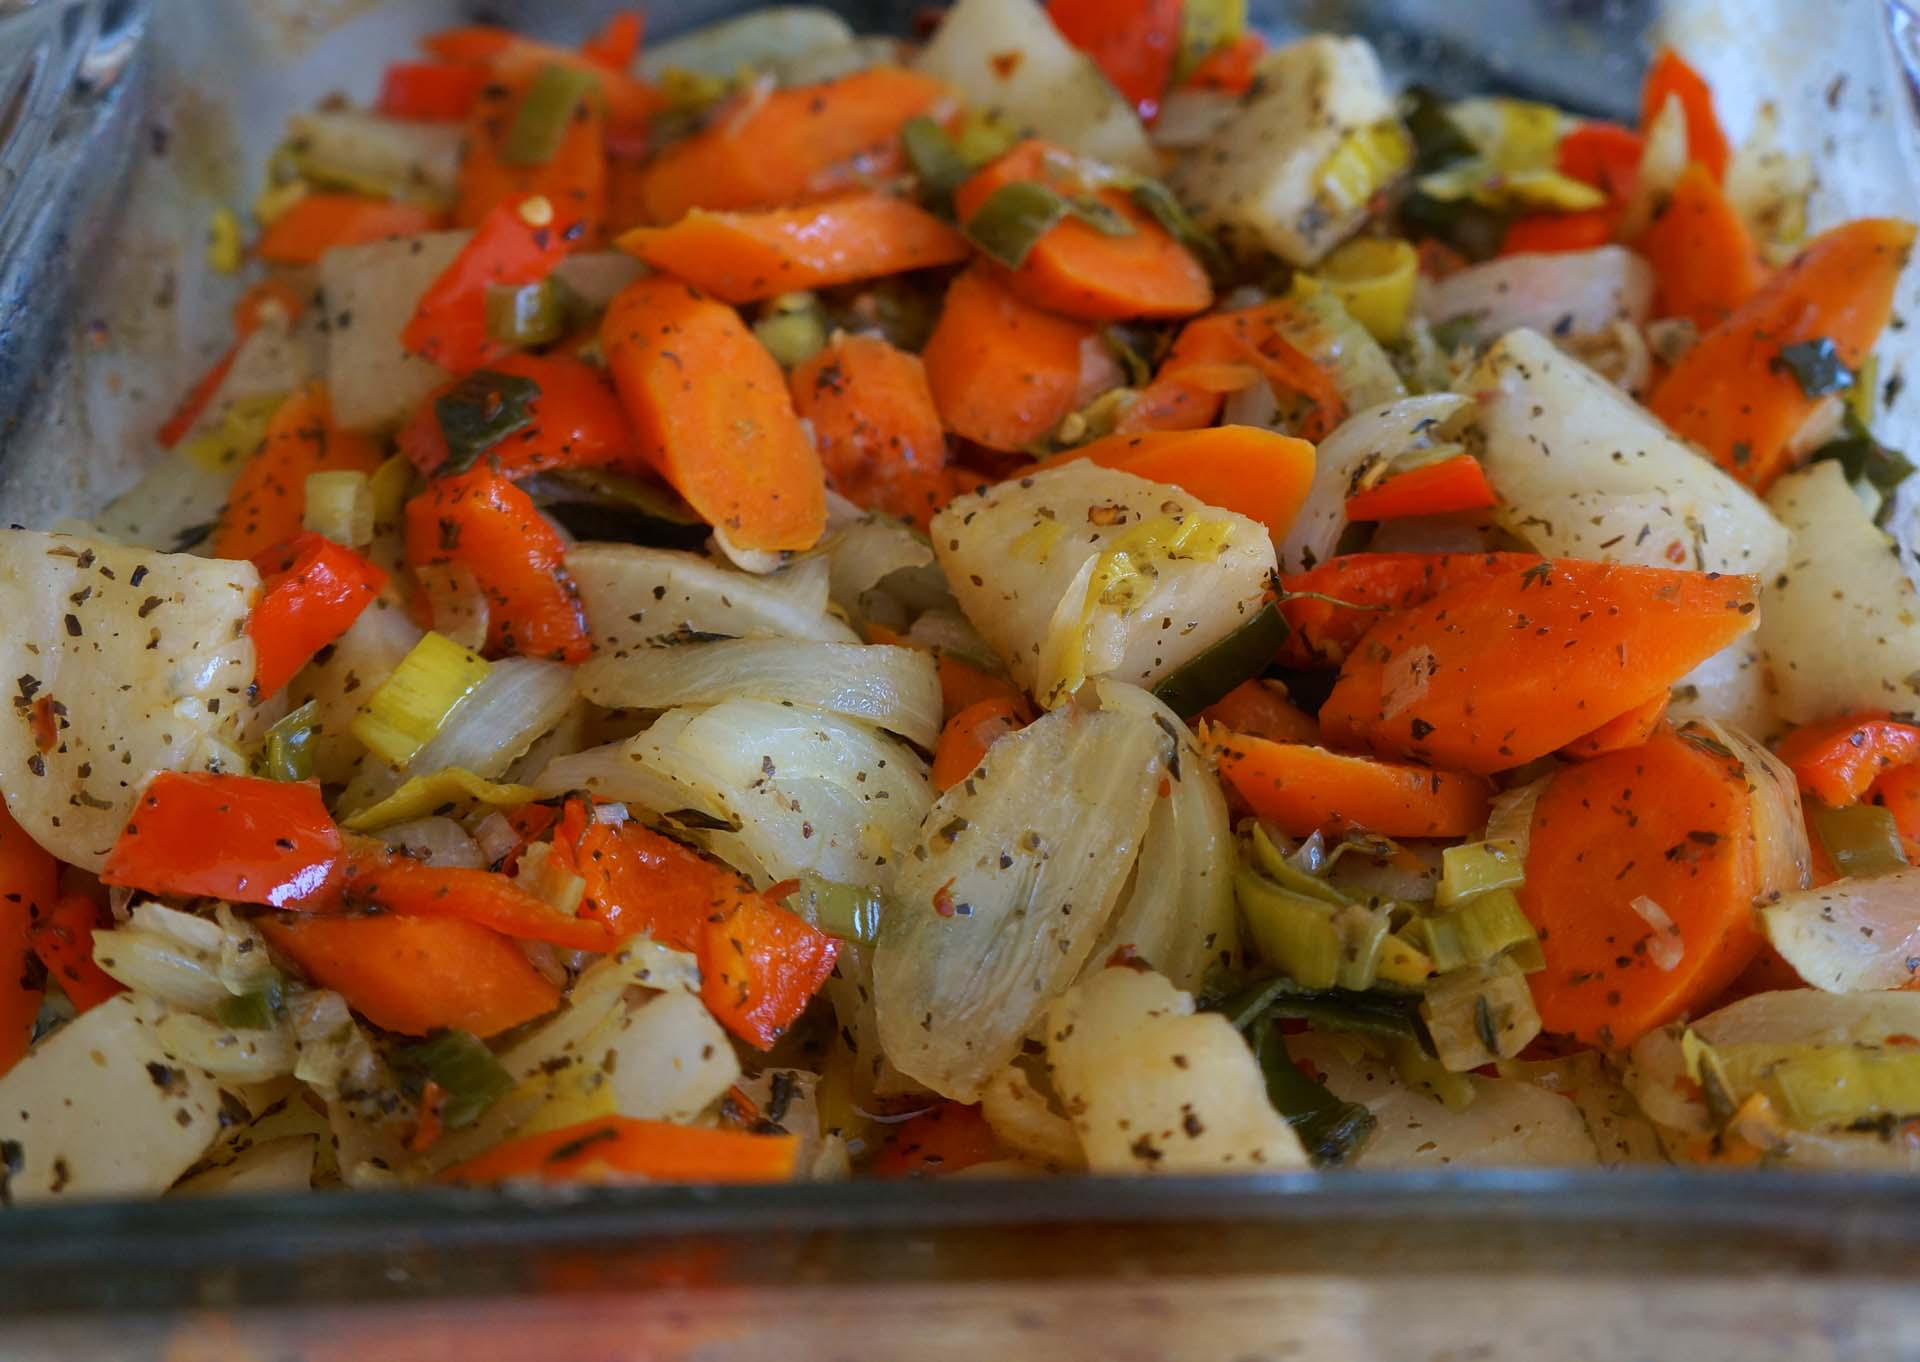 Baked Carrots and Parsnips